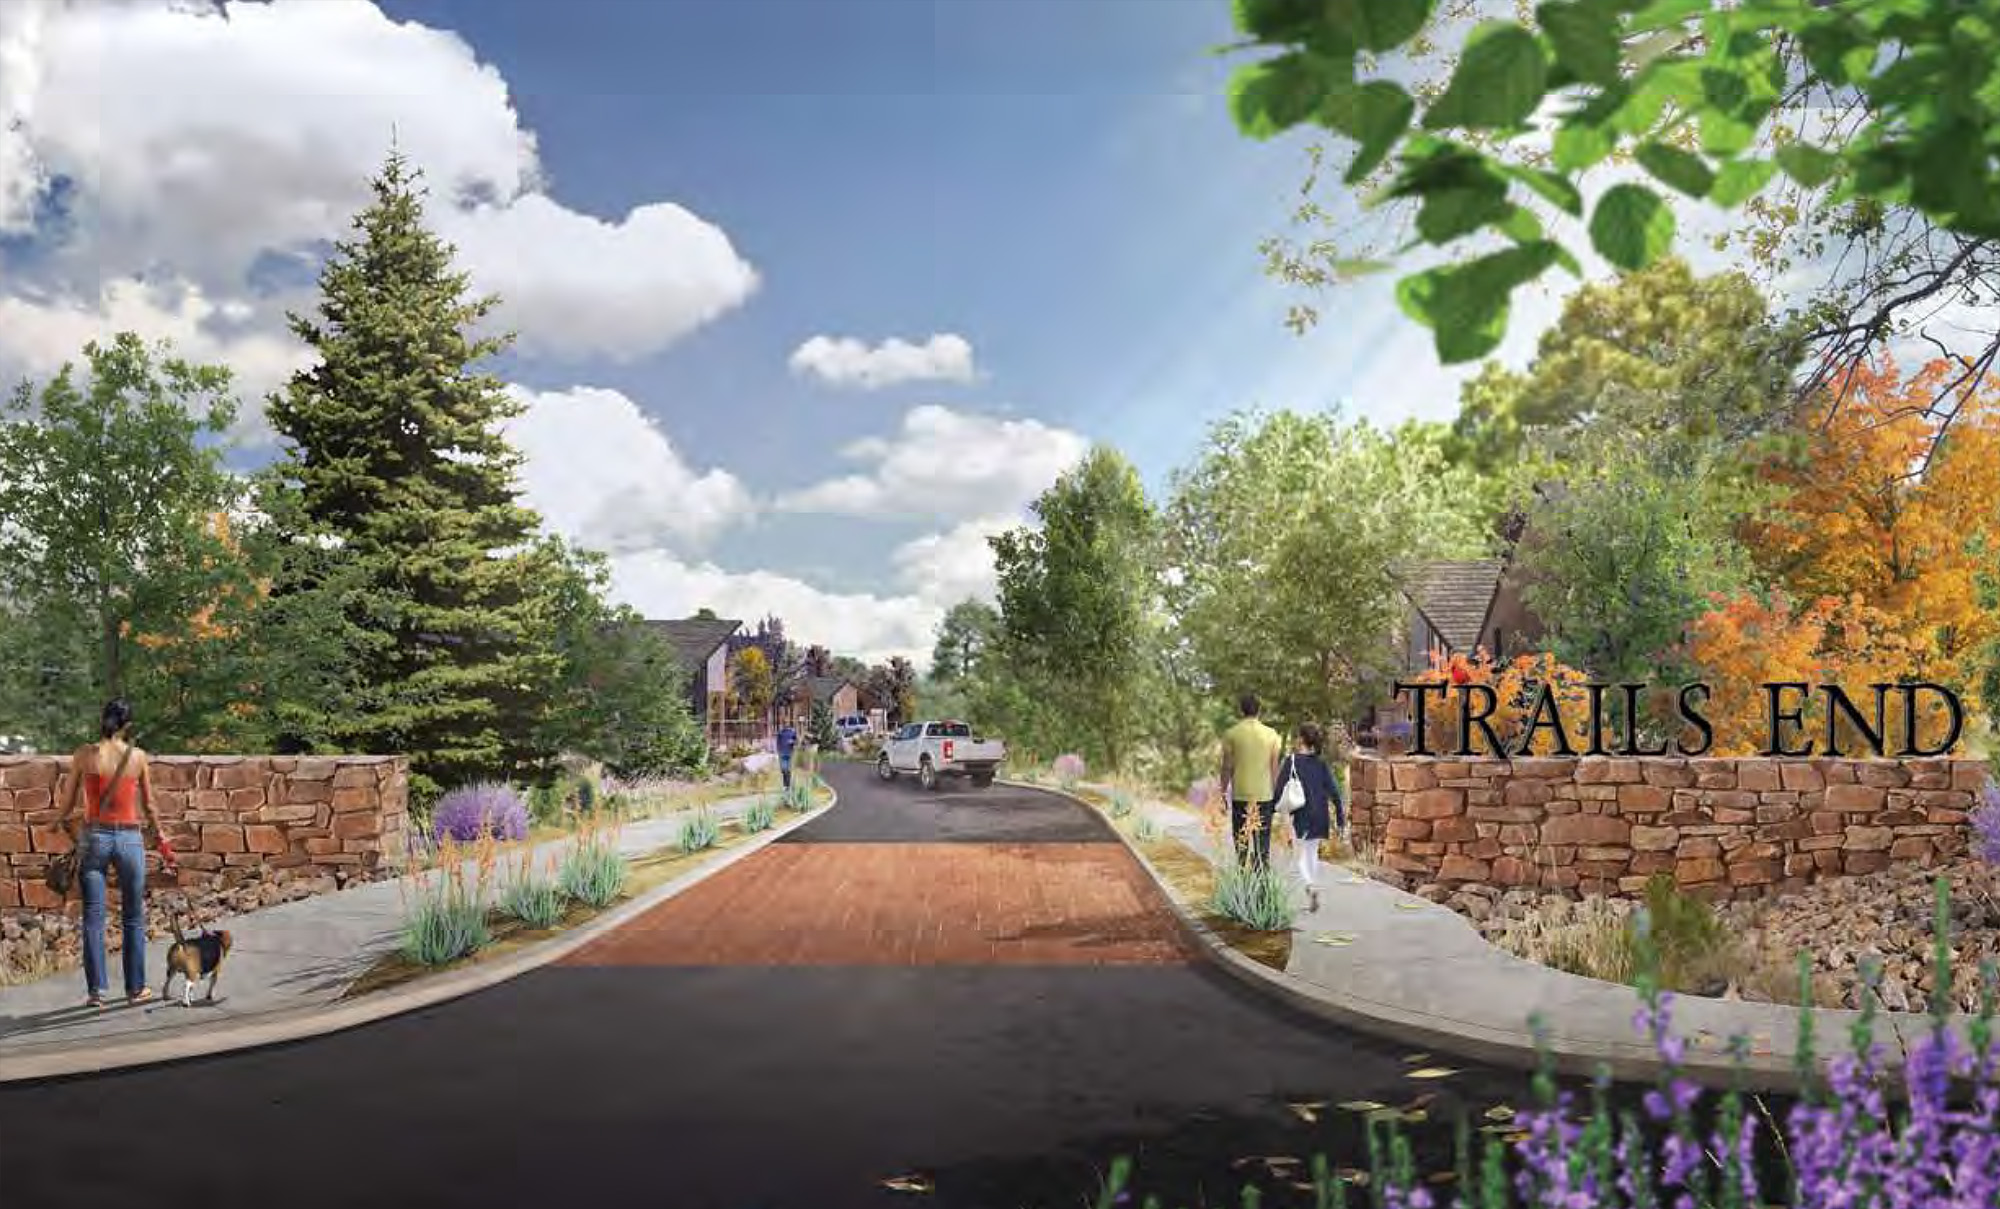 Get to know Trails End - Flagstaff's Newest Planned Community!